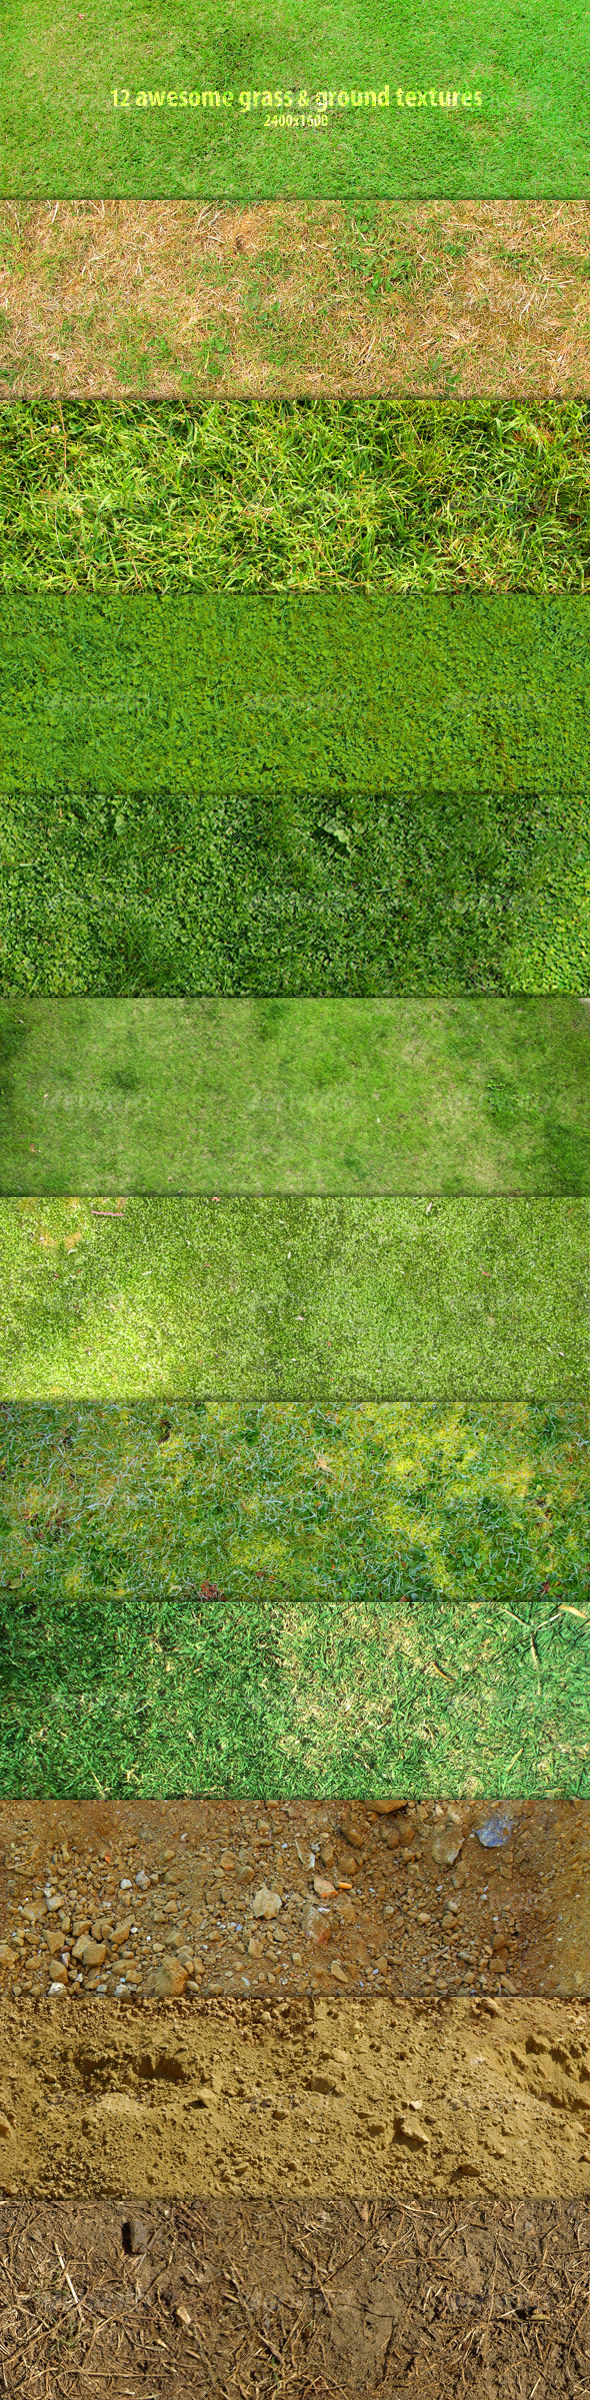 12 Awesome grass & ground textures